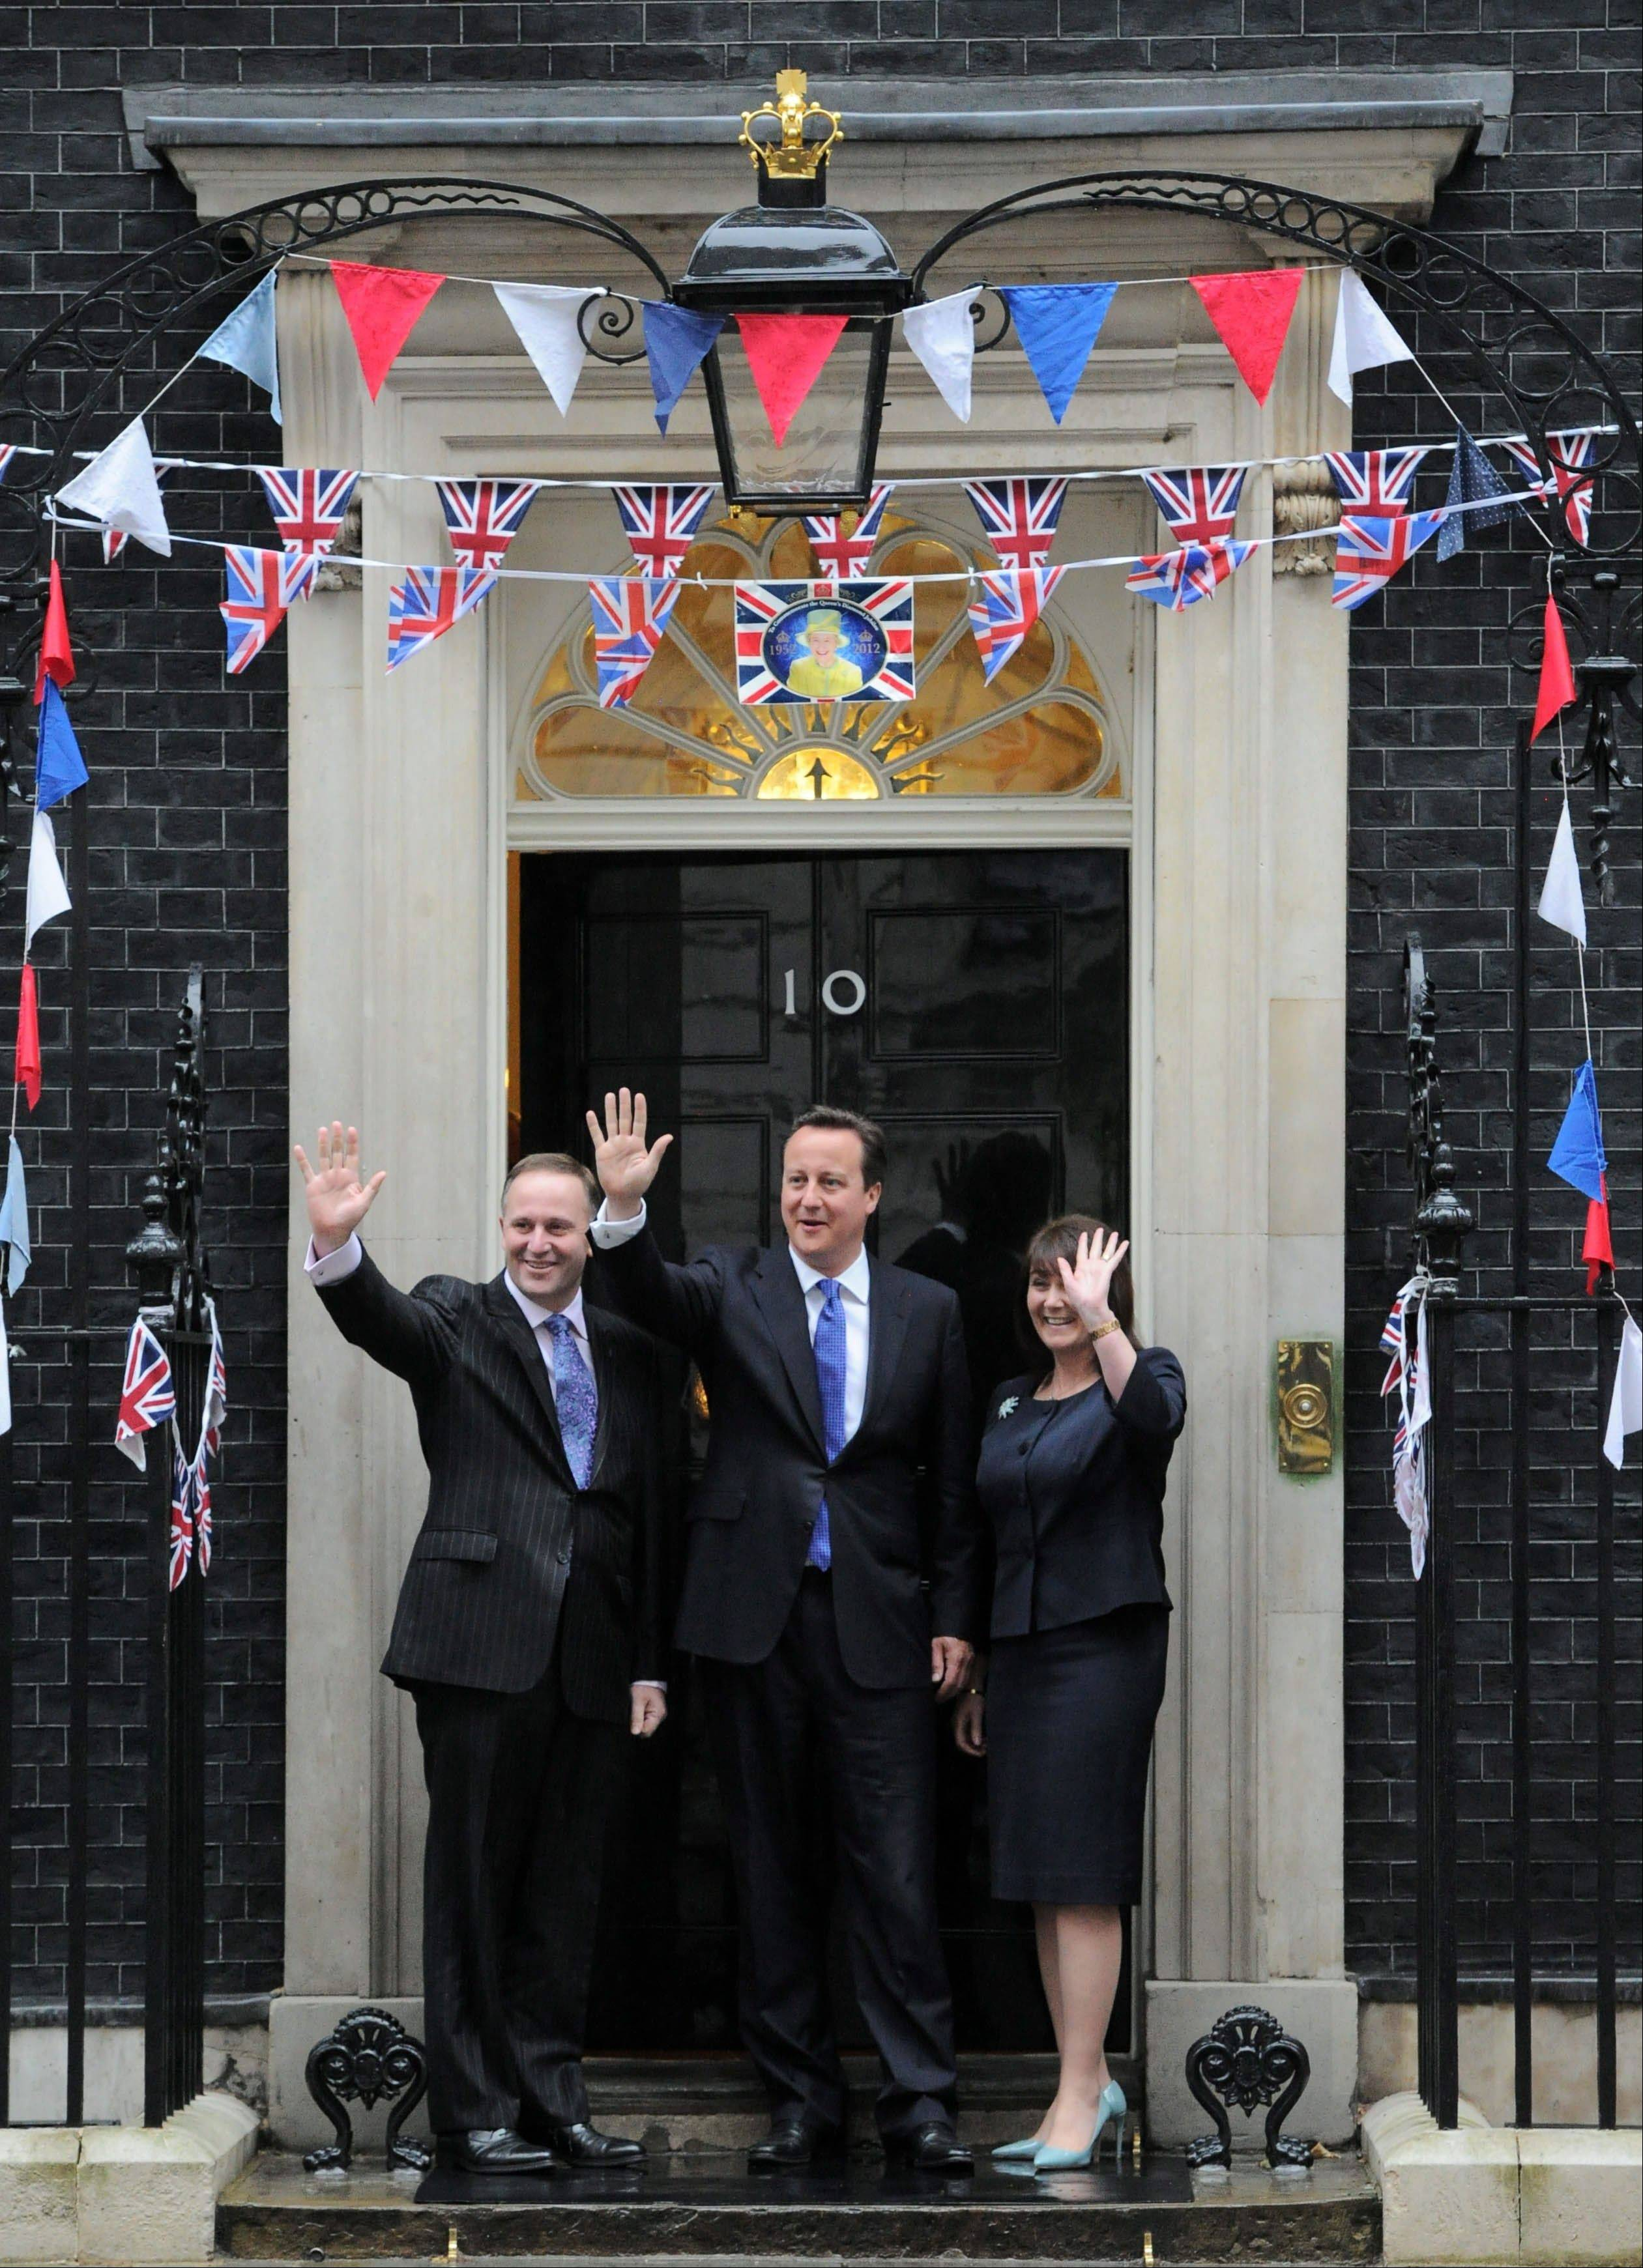 New Zealand Prime Minister John Key and wife Bronagh are greeted by British Prime Minister David Cameron as they arrive to 10 Downing Street in London on Tuesday, June 5, 2012, during the Queen's Diamond Jubilee. The well-wishers came in all ages, from across Britain and around the world, and many seemed genuinely moved.